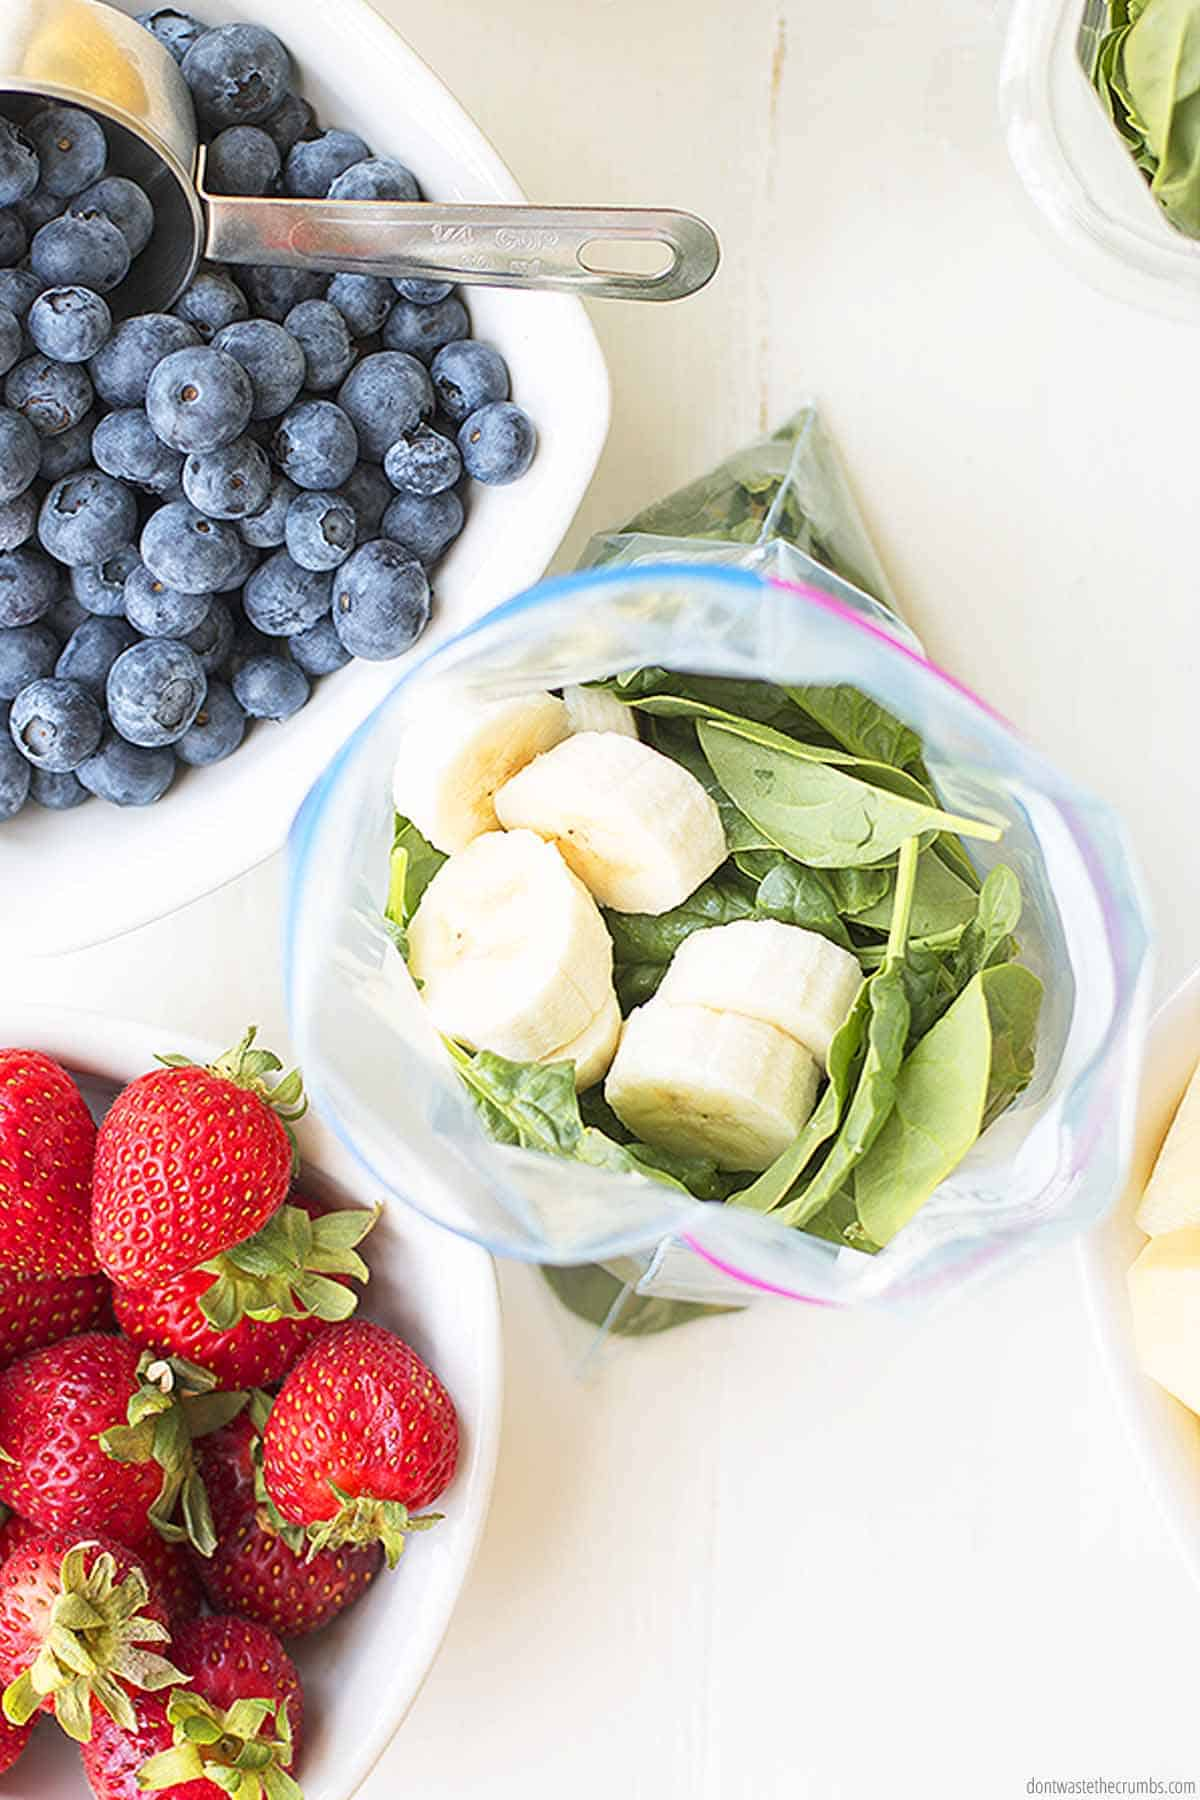 A freezer bag is being filled with fresh leafy greens and bananas. A bowl of blueberries has a stainless steel scoop inside of it. and there is a fresh bowl of strawberries as well.